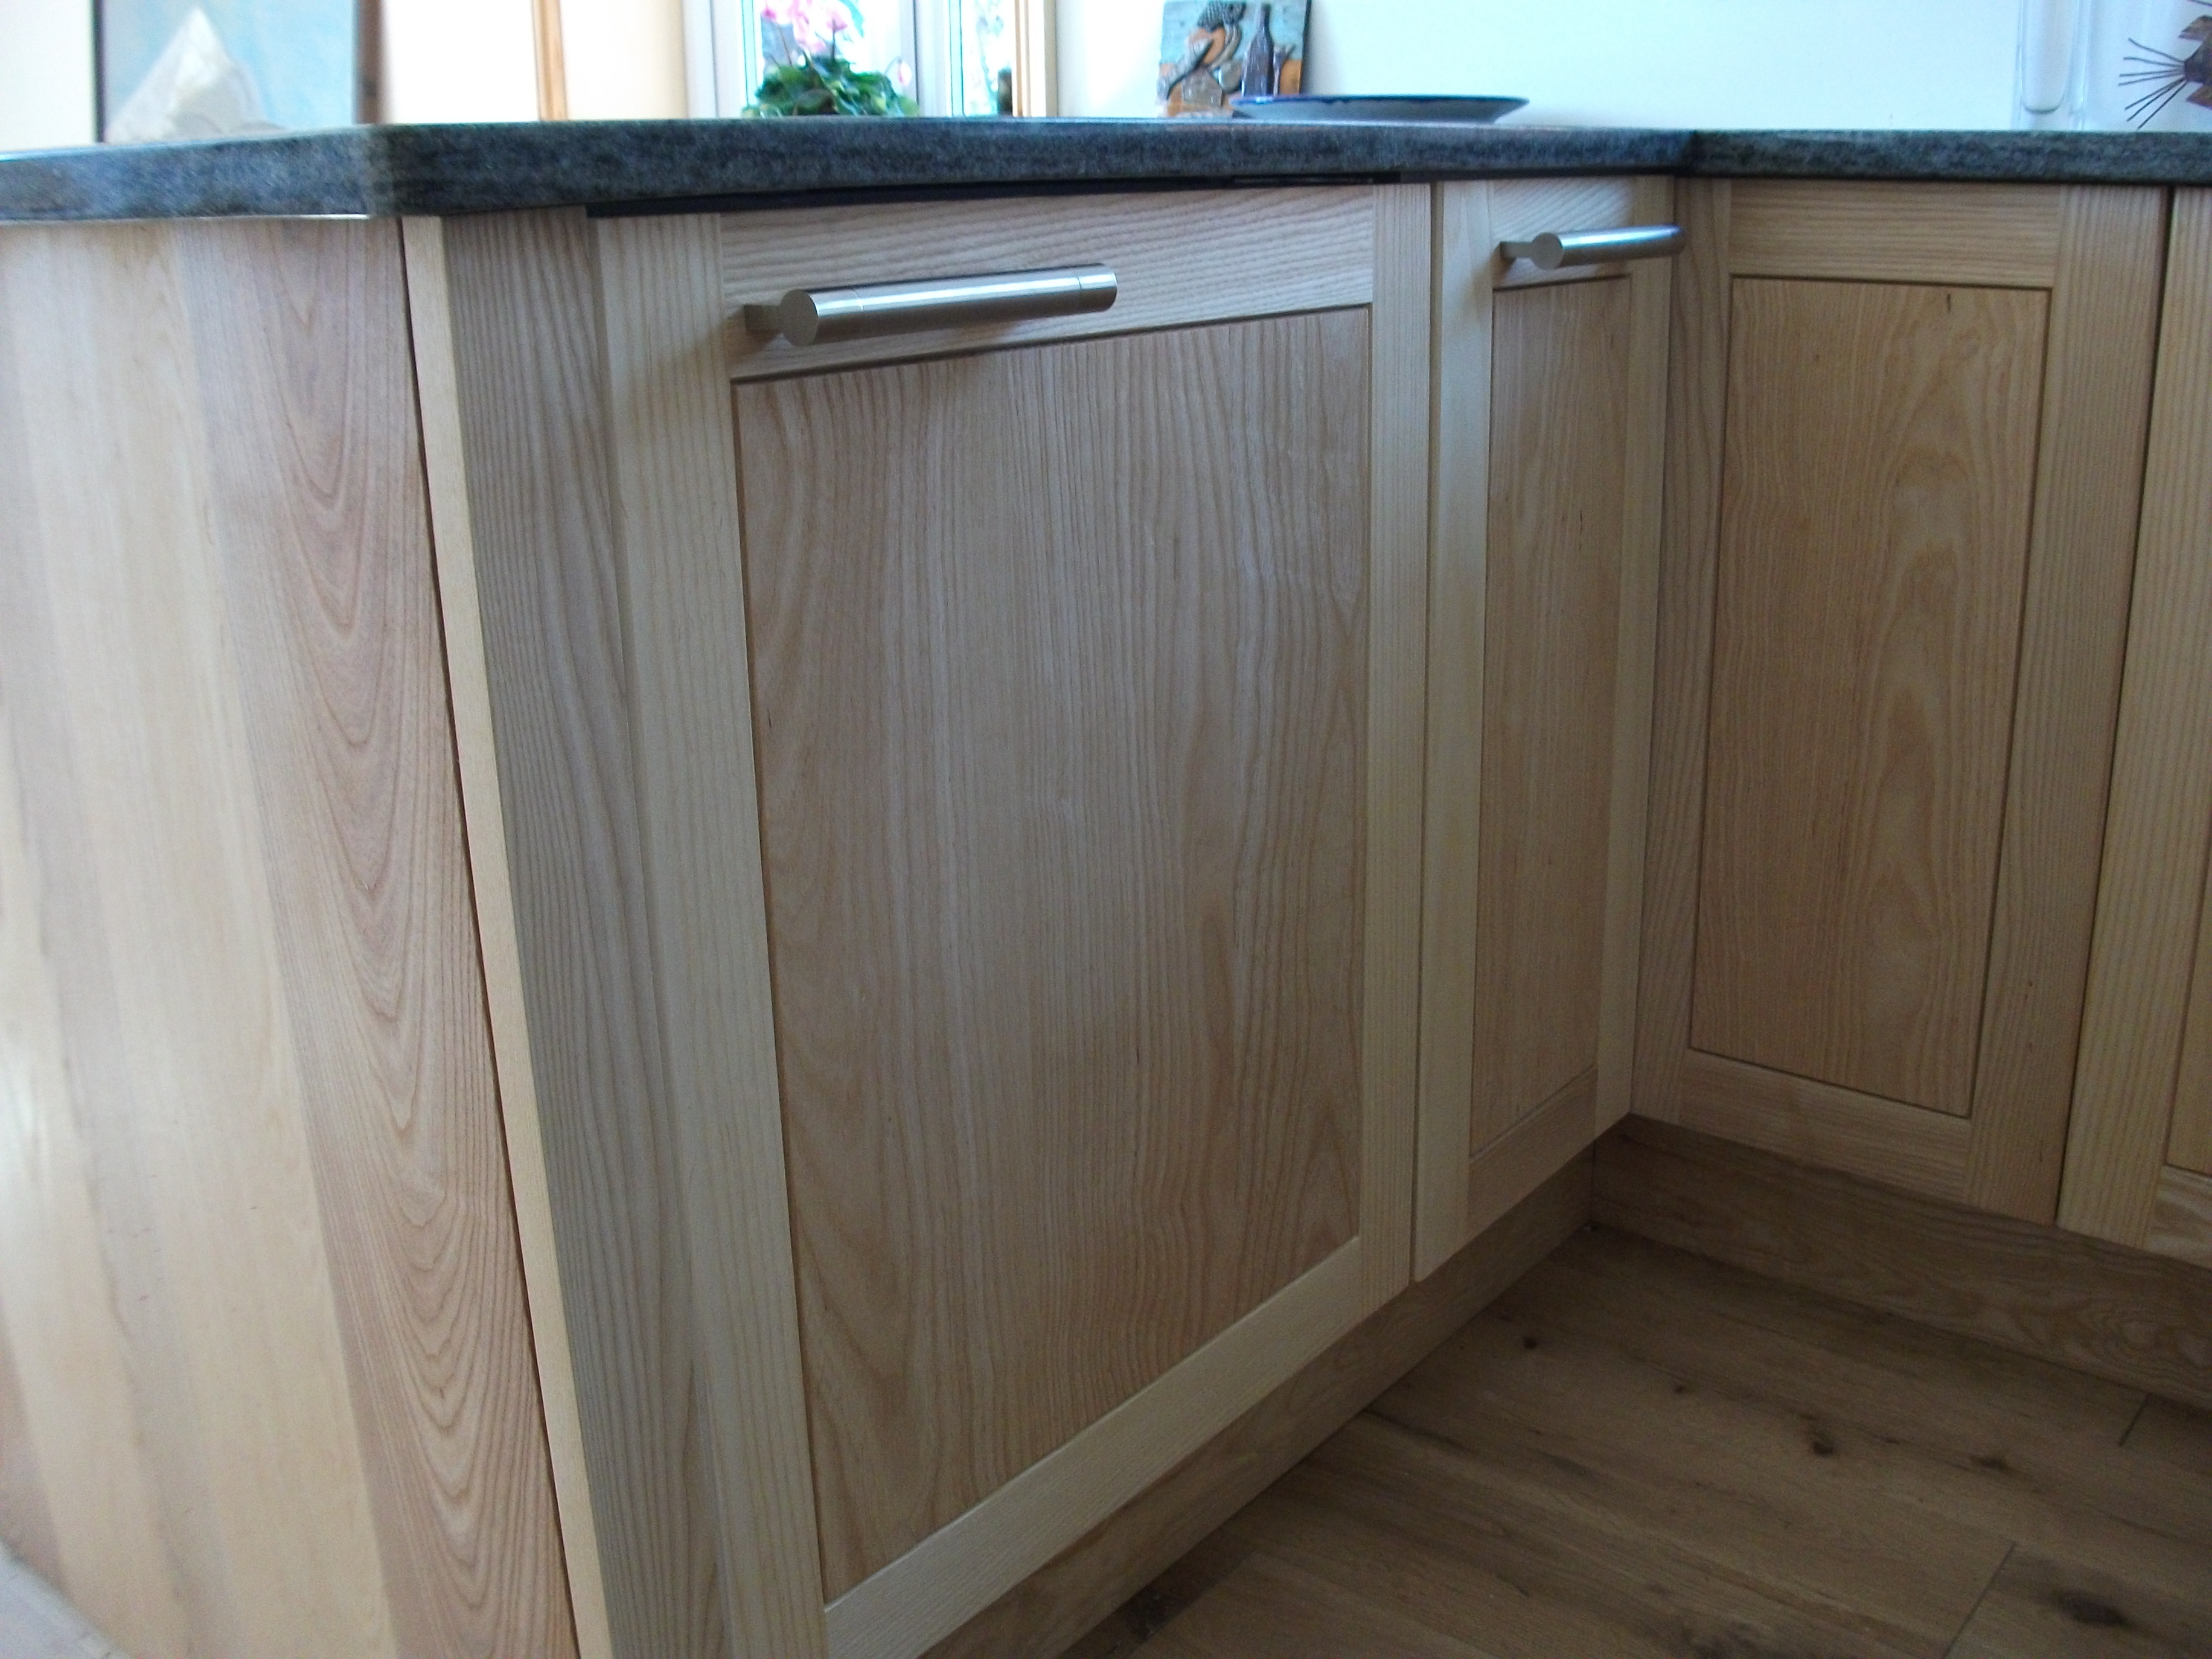 lackington joinery made bespoke oak cupboard doors to fit the standard